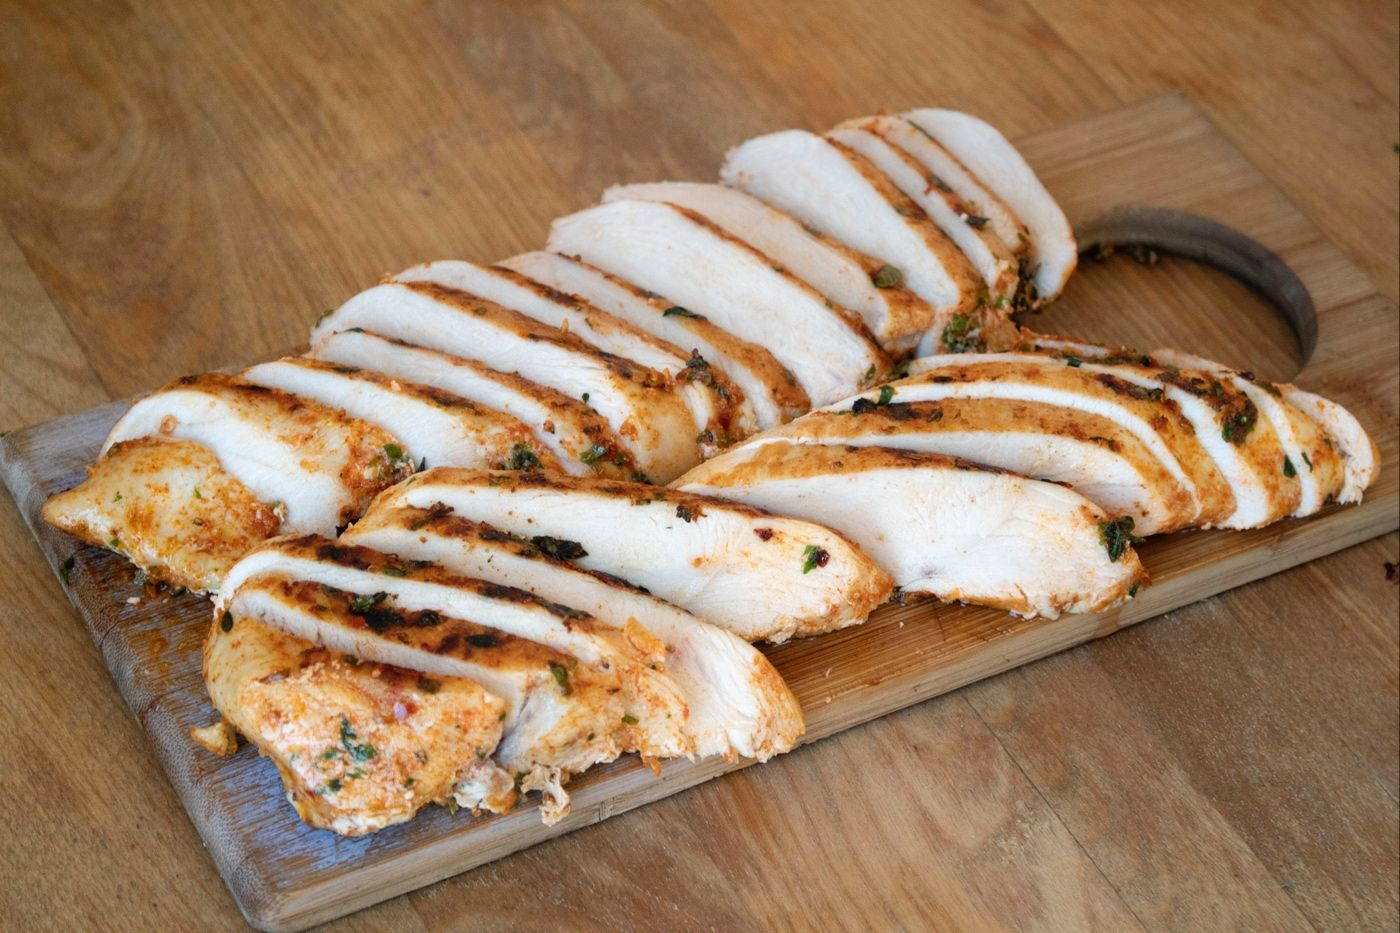 Marinated chicken breast with spices cooked on sous vide easy precise cooker Cinder Grill's Chicken Breast Sous Vide Chicken Breast Tender Chicken Juicy Chicken Breast